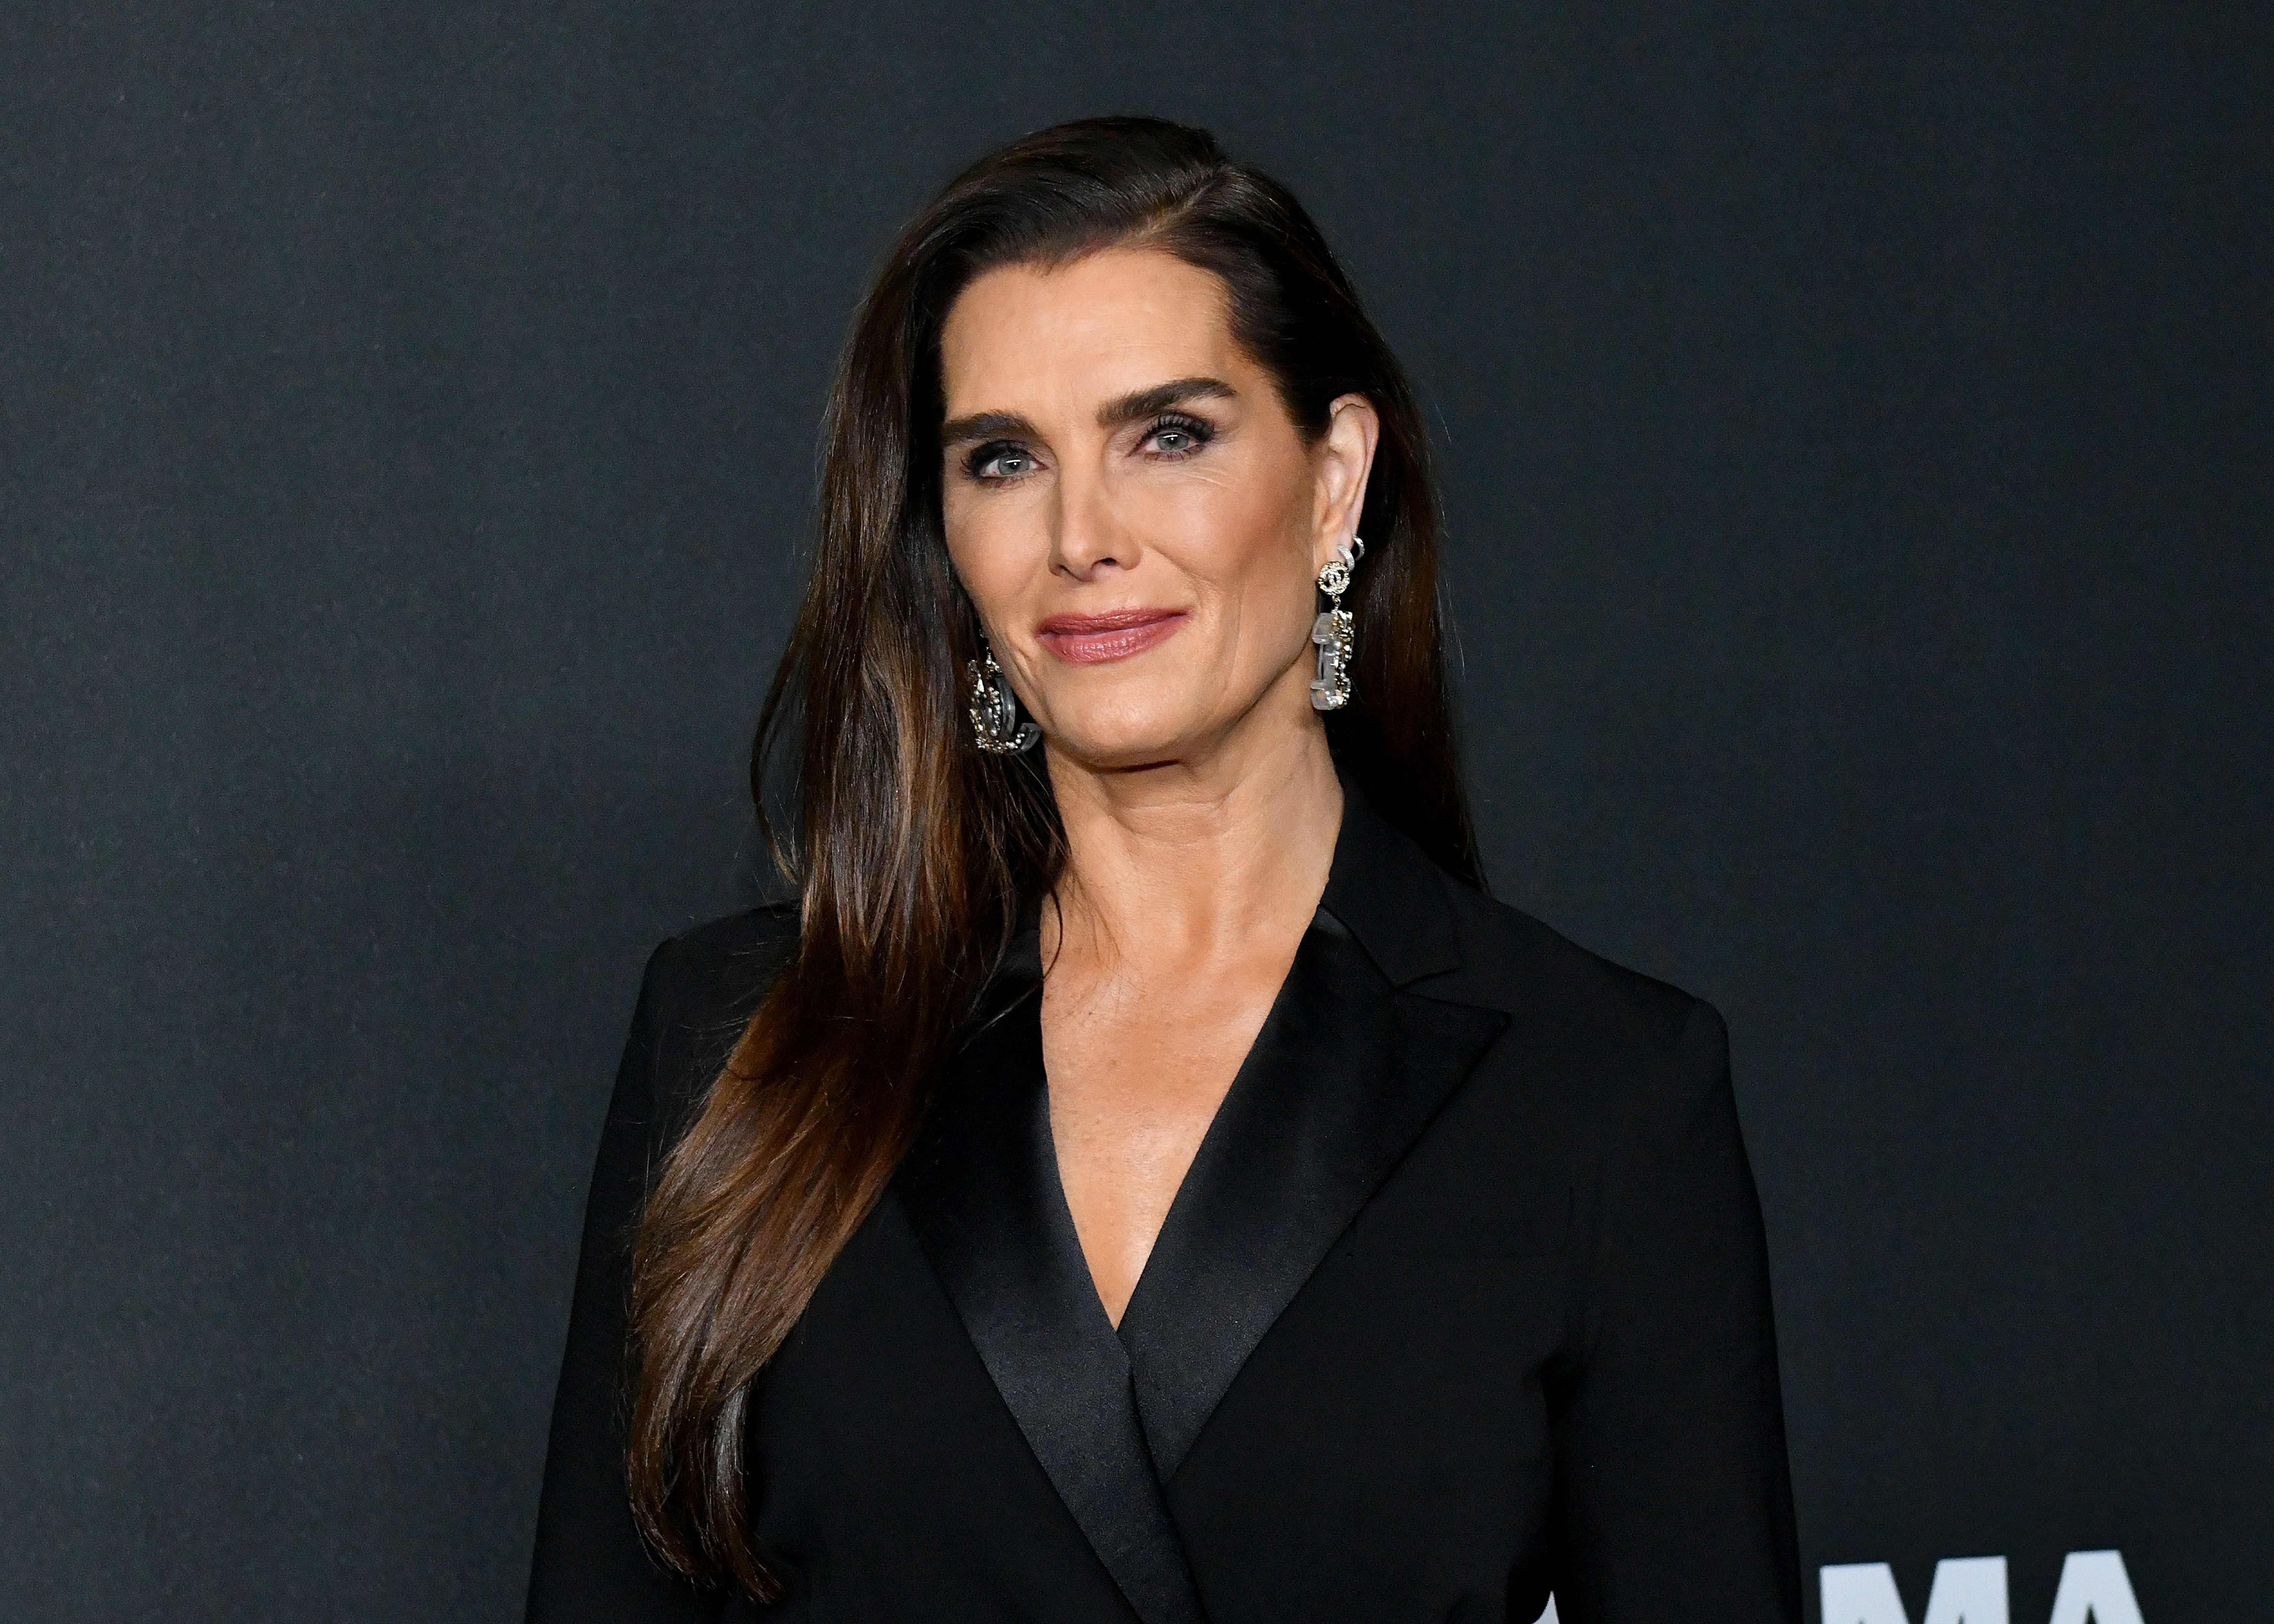 Brooke Shields at MoMA's Twelfth Annual Film Benefit Presented By CHANEL Honoring Laura Dern on November 12, 2019.   Photo: Getty Images